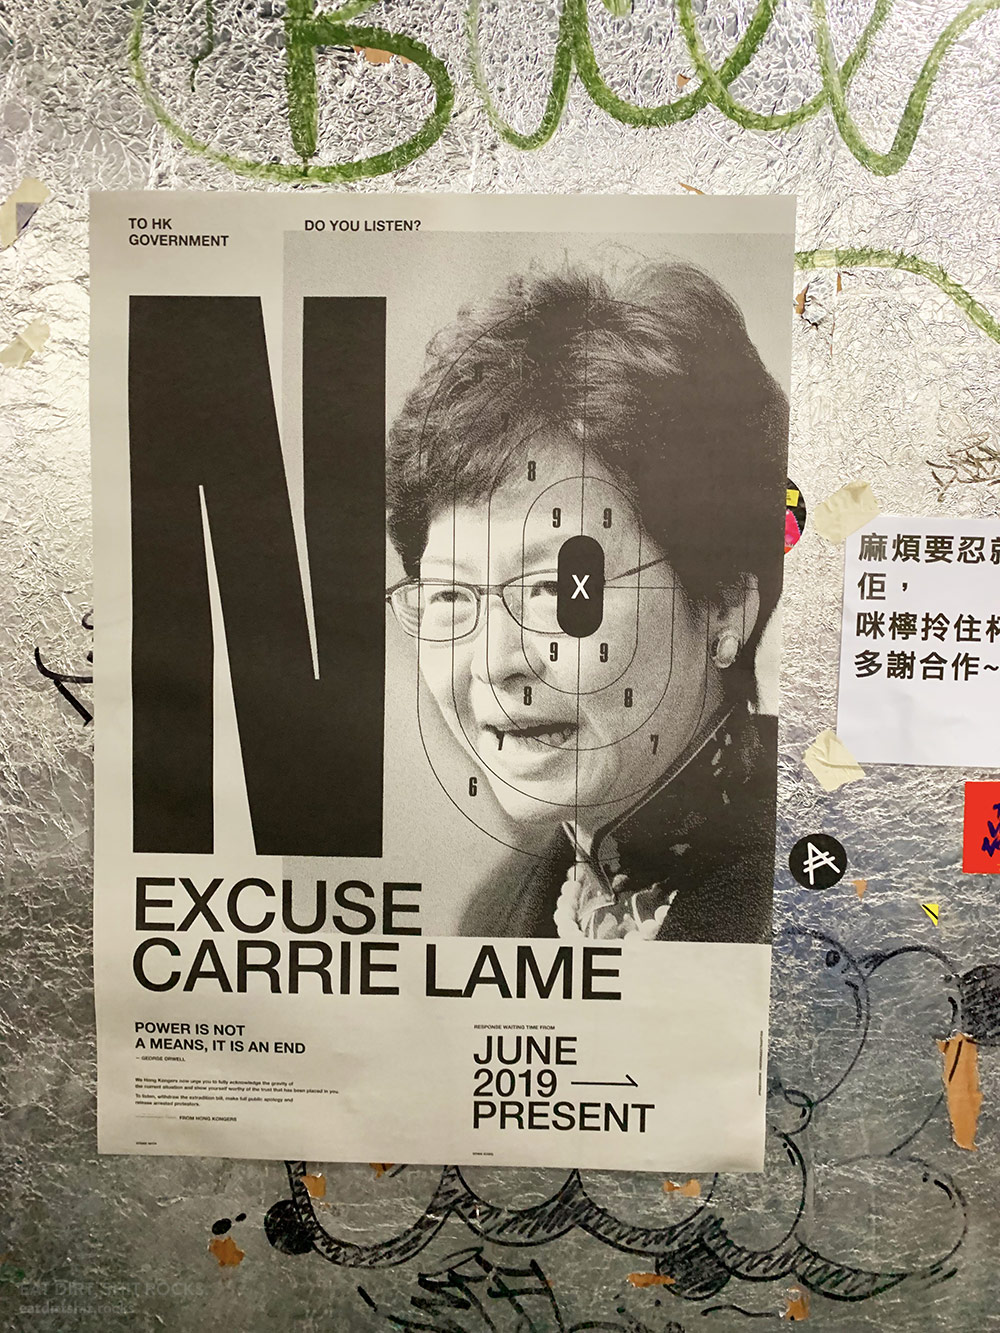 We saw this poster in the elevator from street level to the This Town Needs live music venue in Yau Tong.